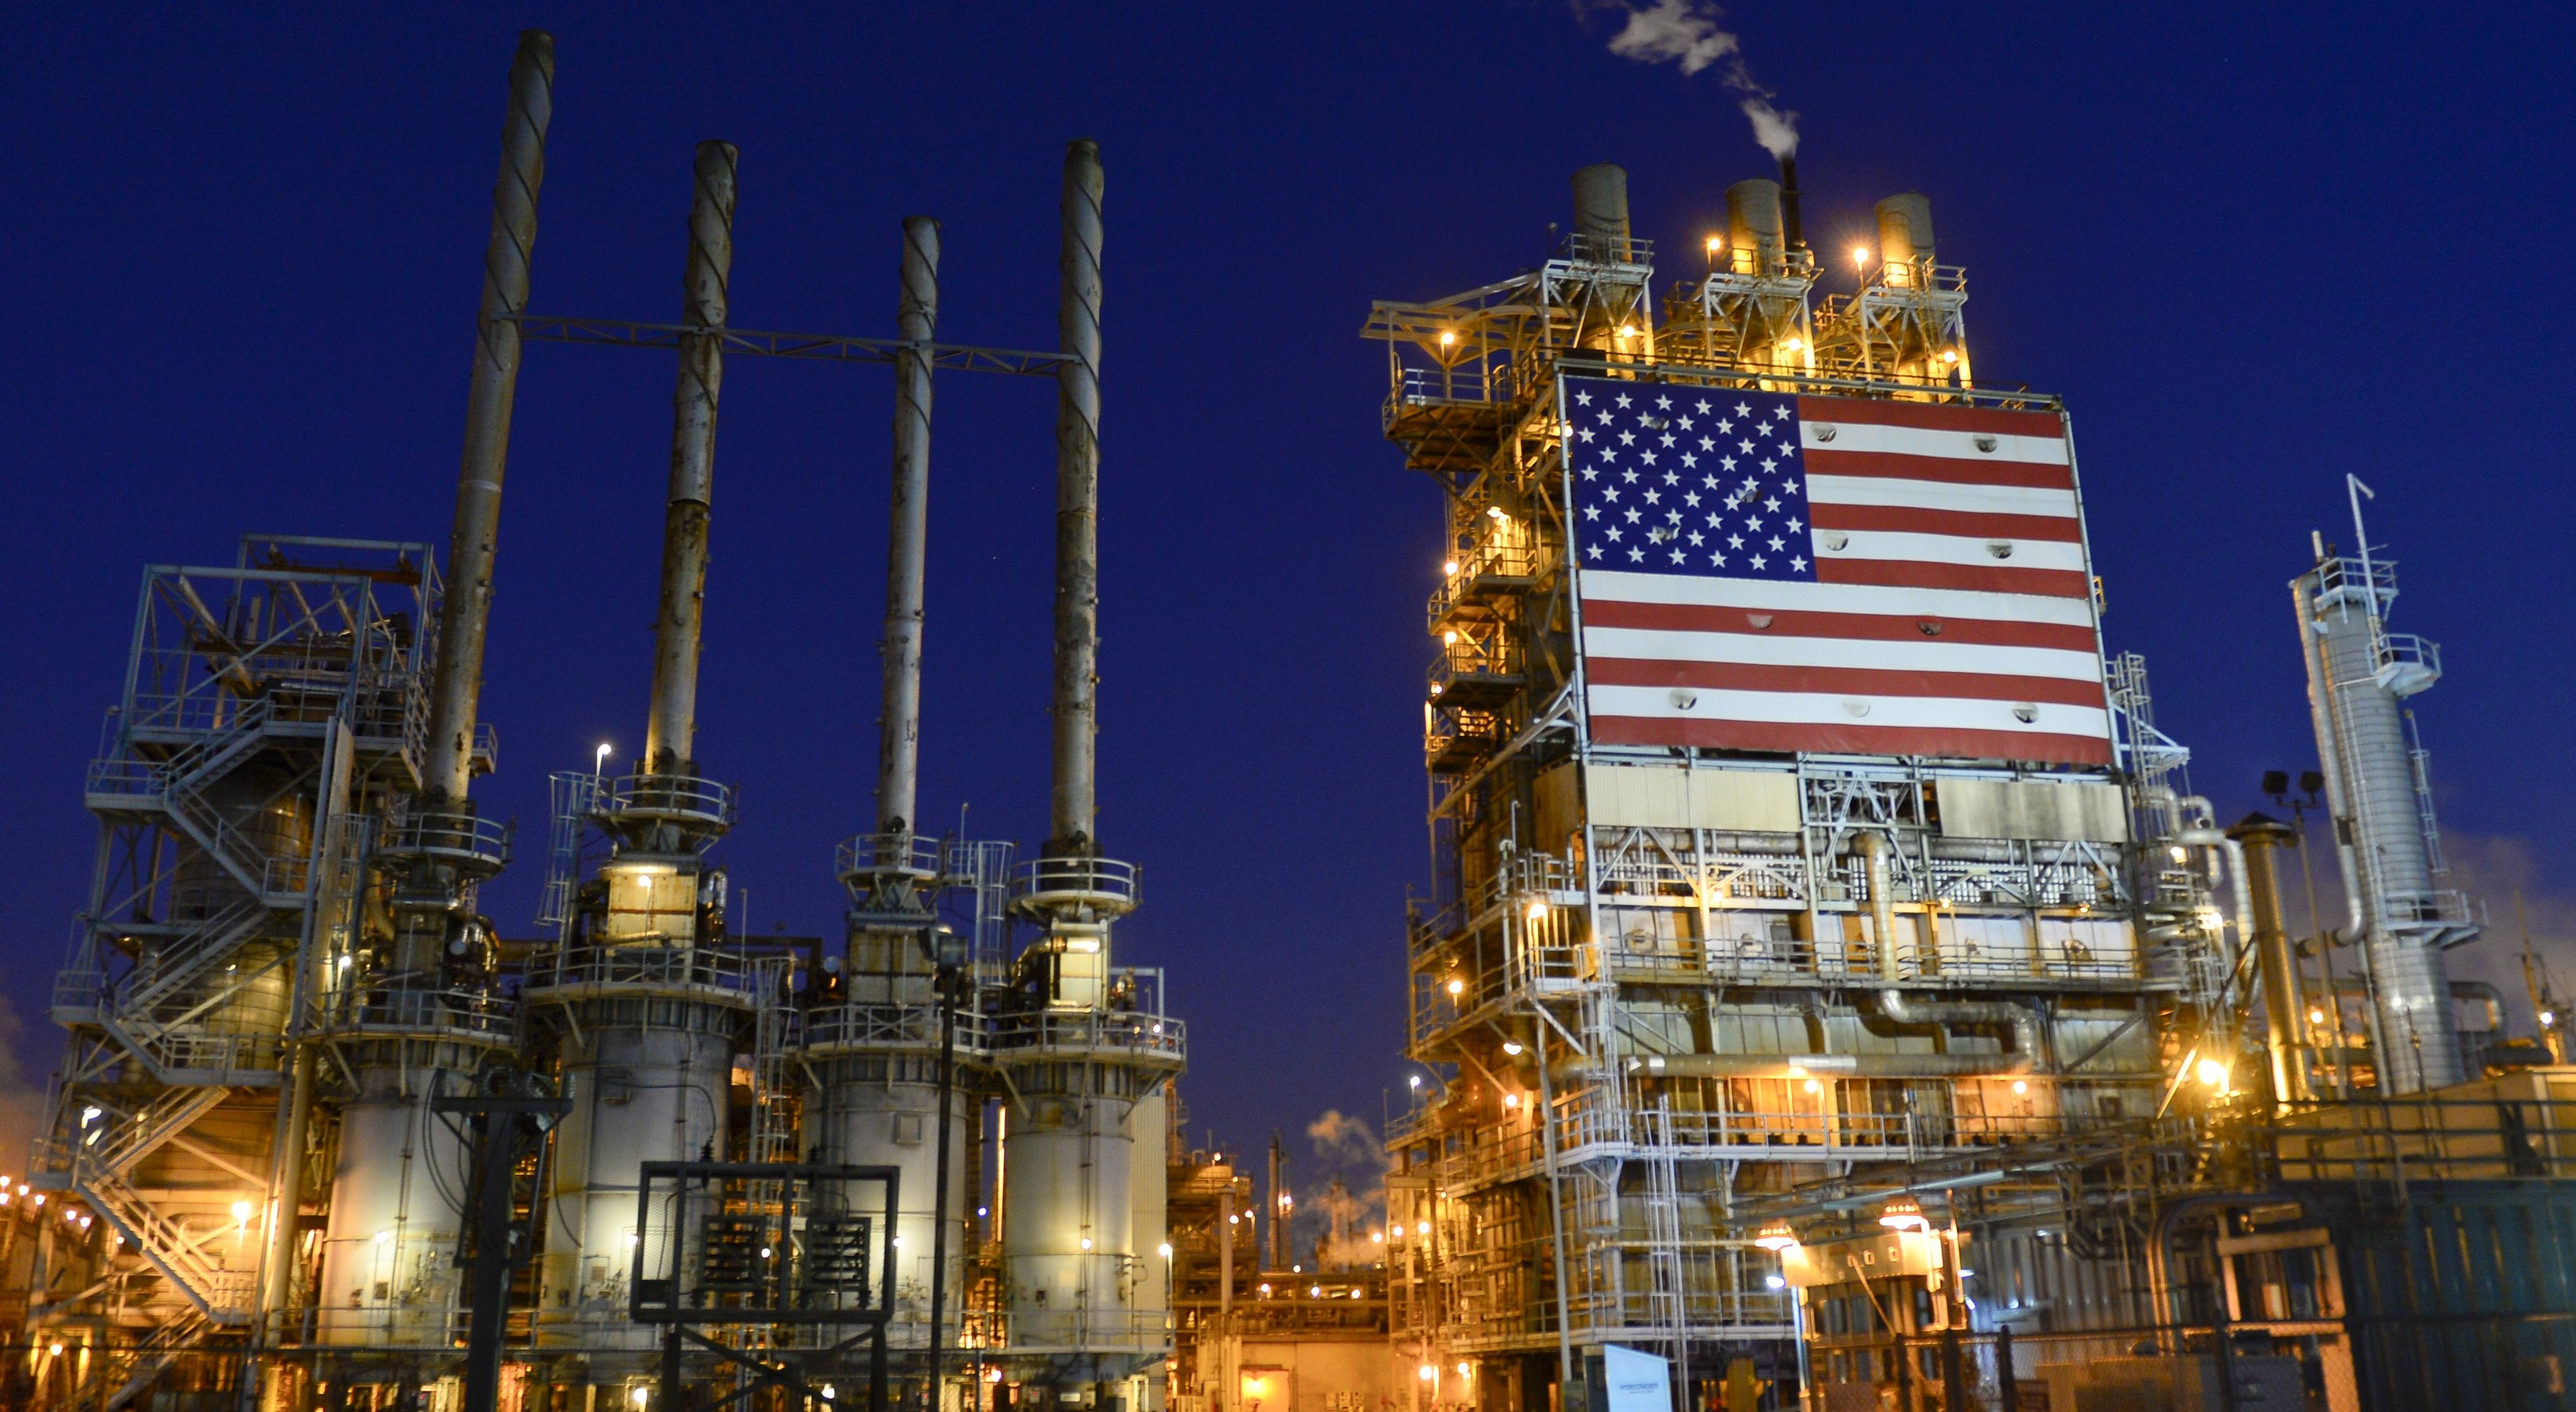 Hd Washington Dc Wallpaper Awful Renewable Fuel Standard Is Doomed Freedomworks